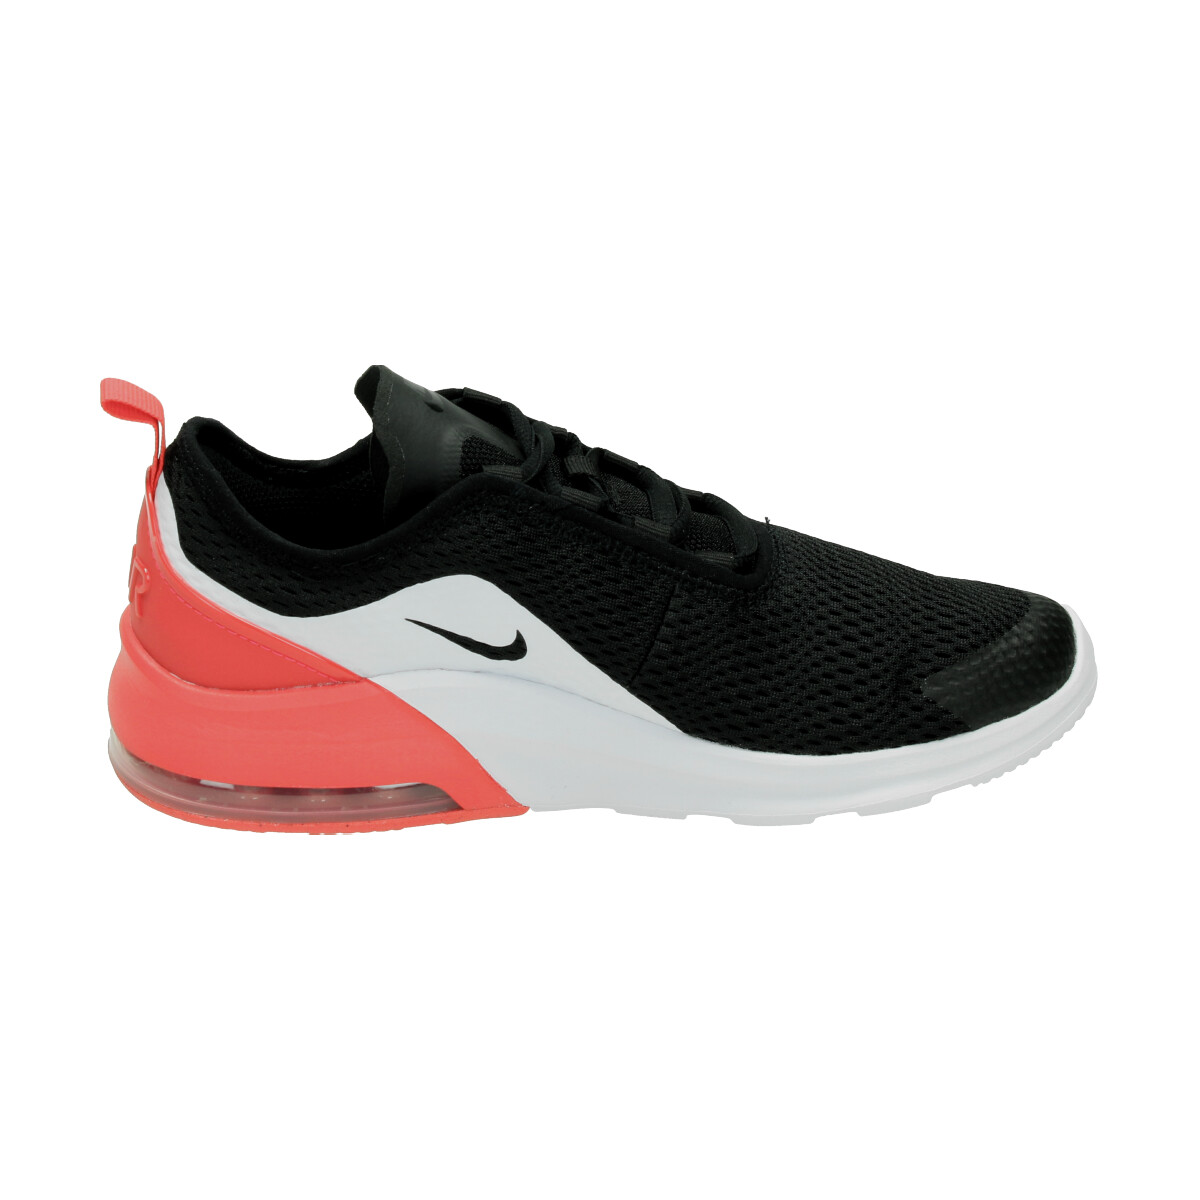 f9cc09bed7b Nike Air Max Motion 2. AQ2741 007 Black Red Orbit White. Product afbeelding  Product afbeelding Product afbeelding Product afbeelding Product afbeelding